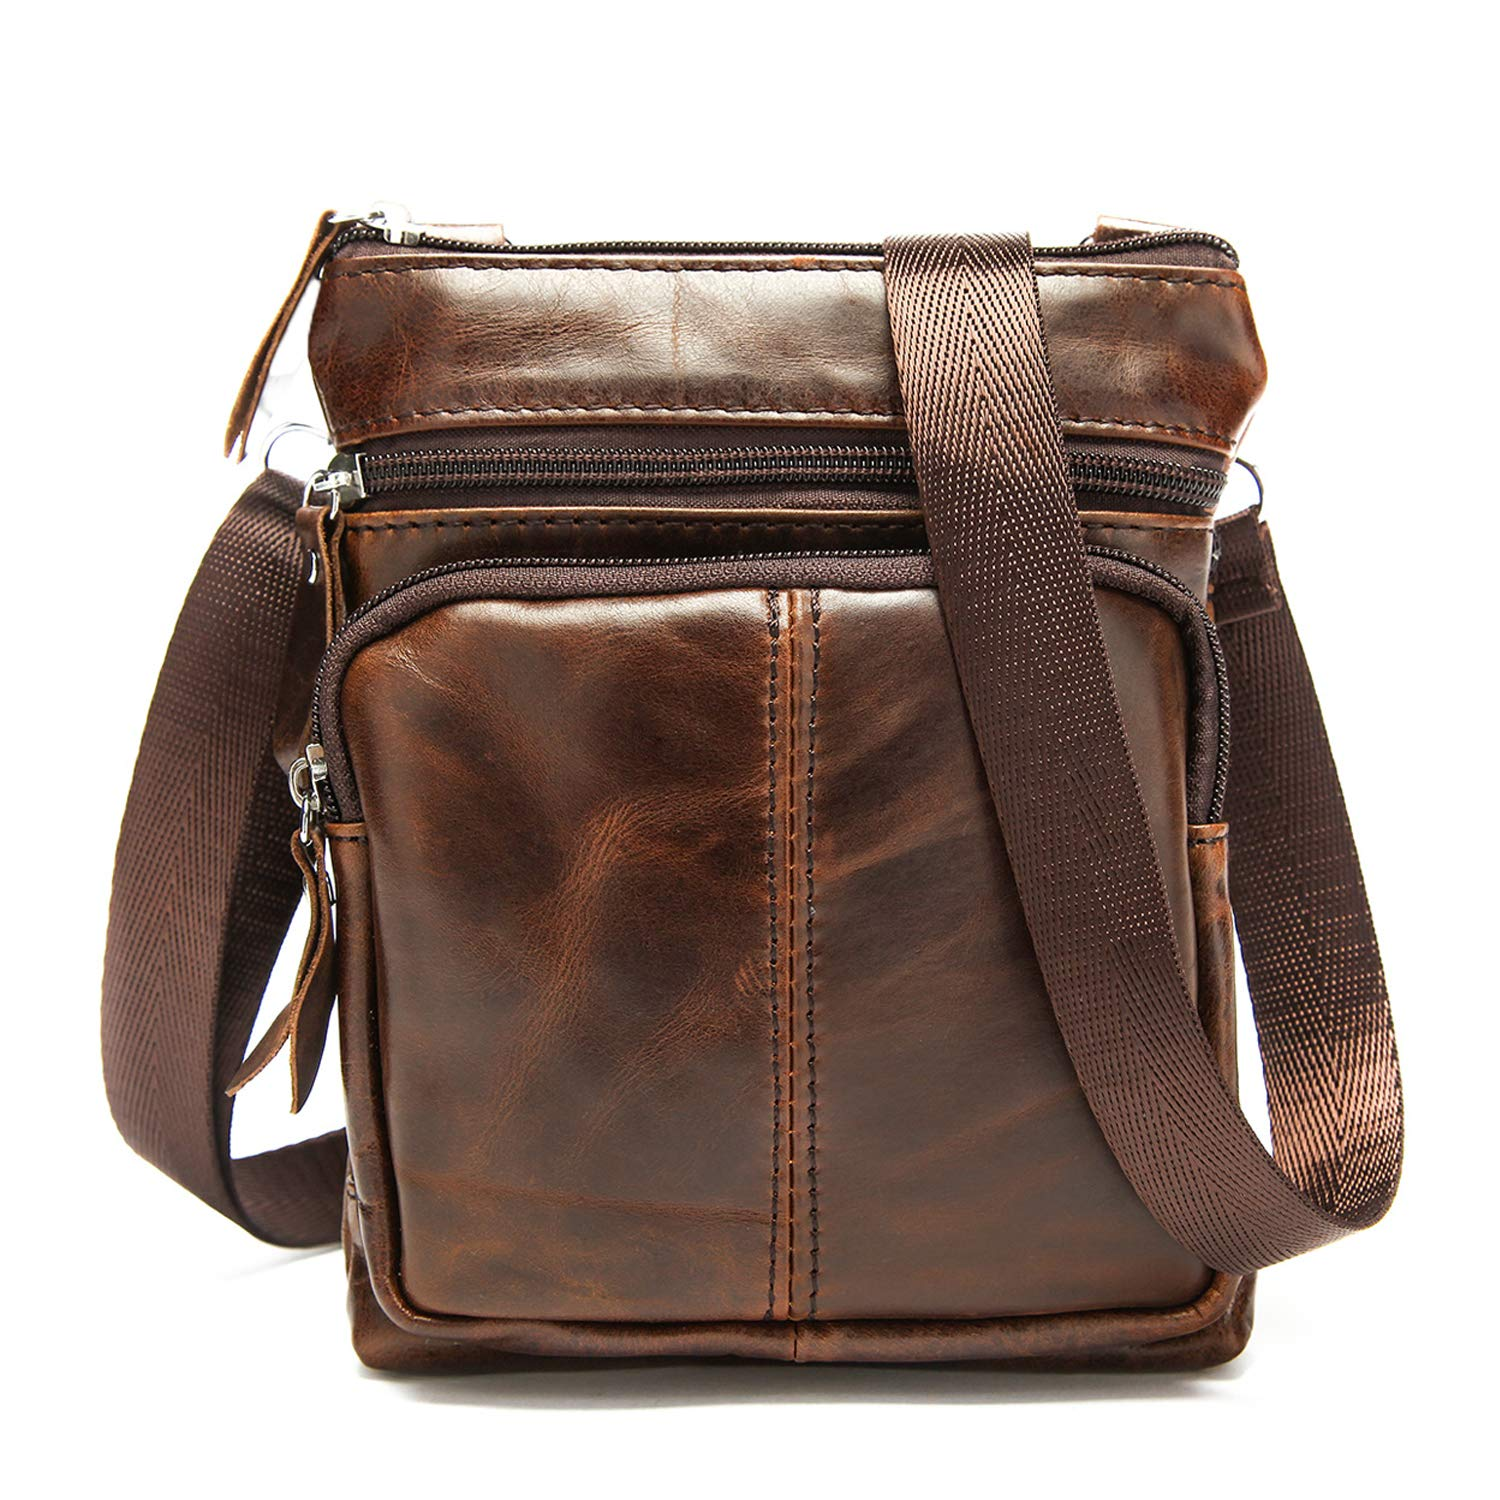 Small Crossbody Bags for Men Leather Mini Messenger Bag Casual Shoulder Purse Sling Bag